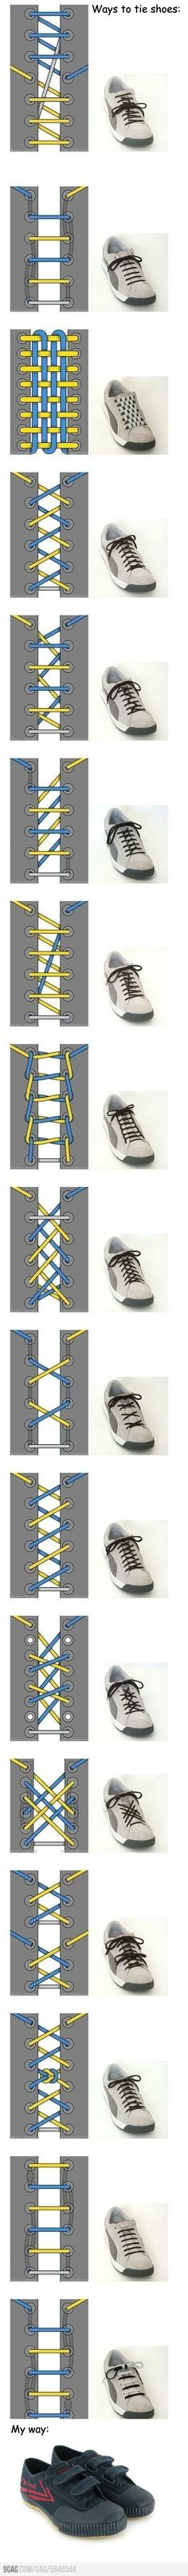 Ways to tie shoes